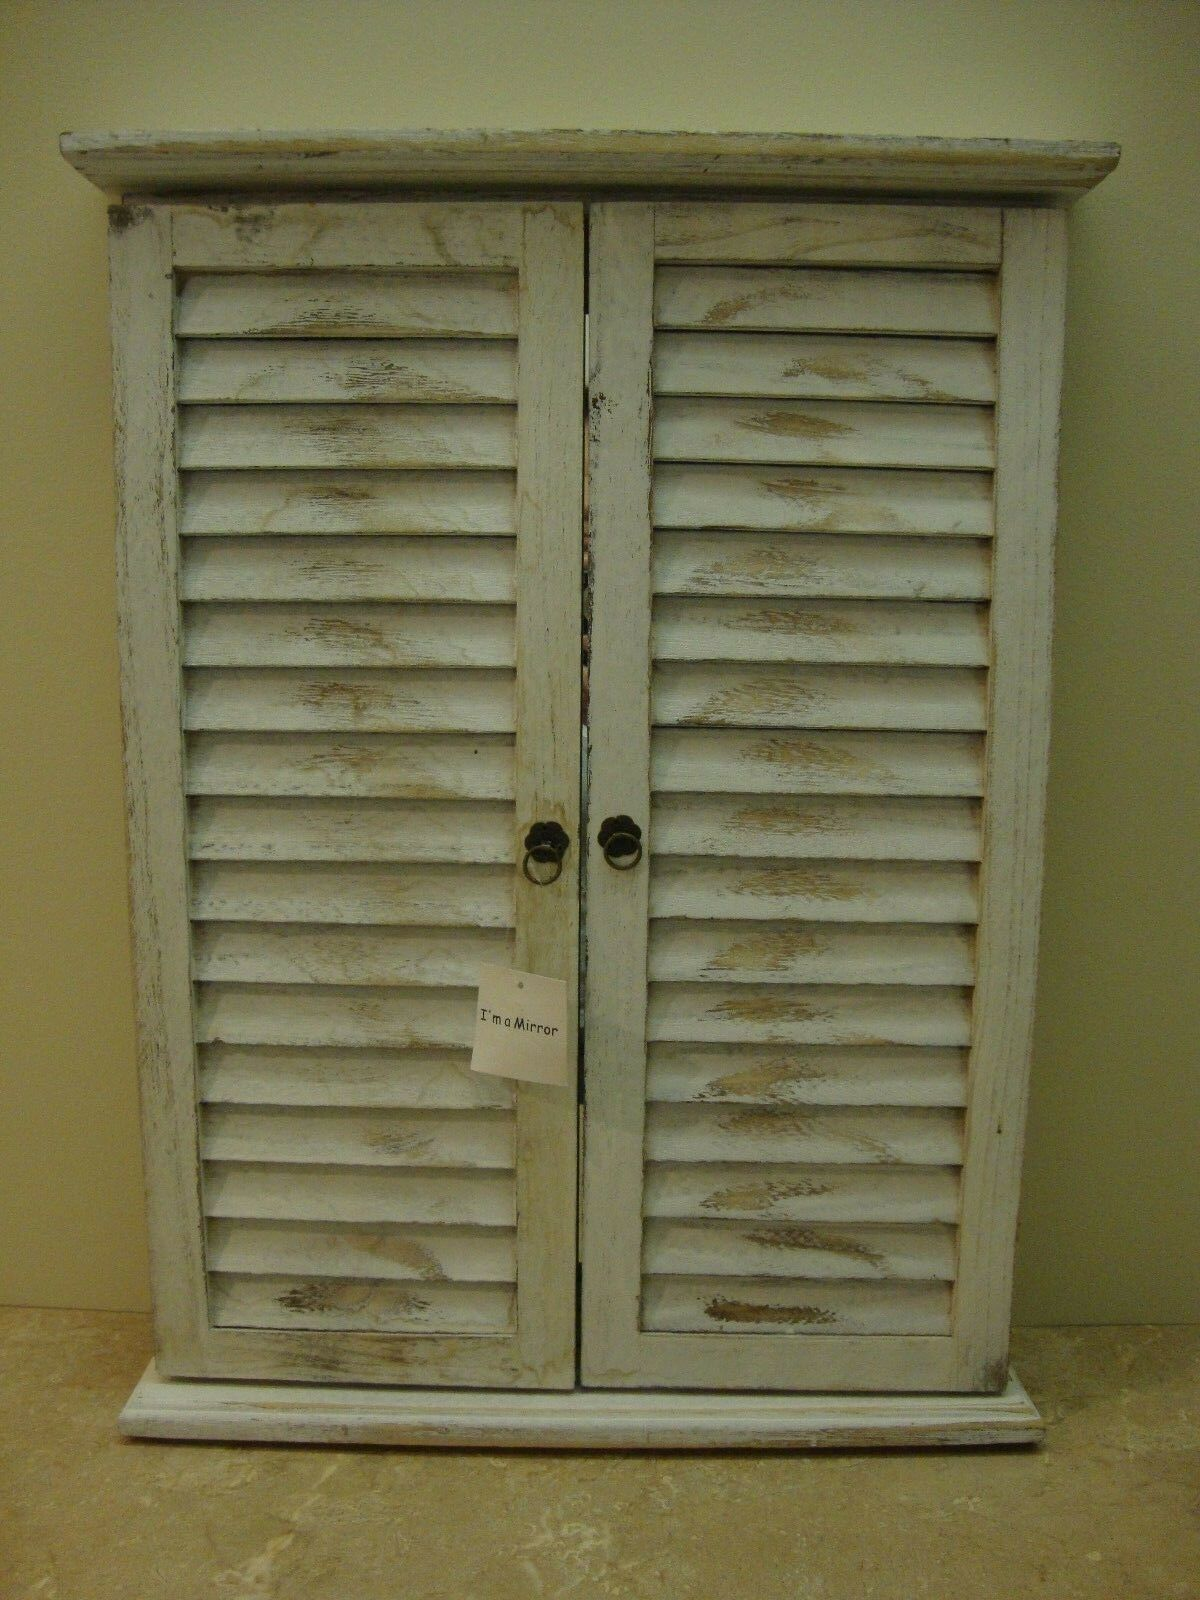 1 Shoreline Distressed Window Mirror With Shutters Wall Hanging Nwt